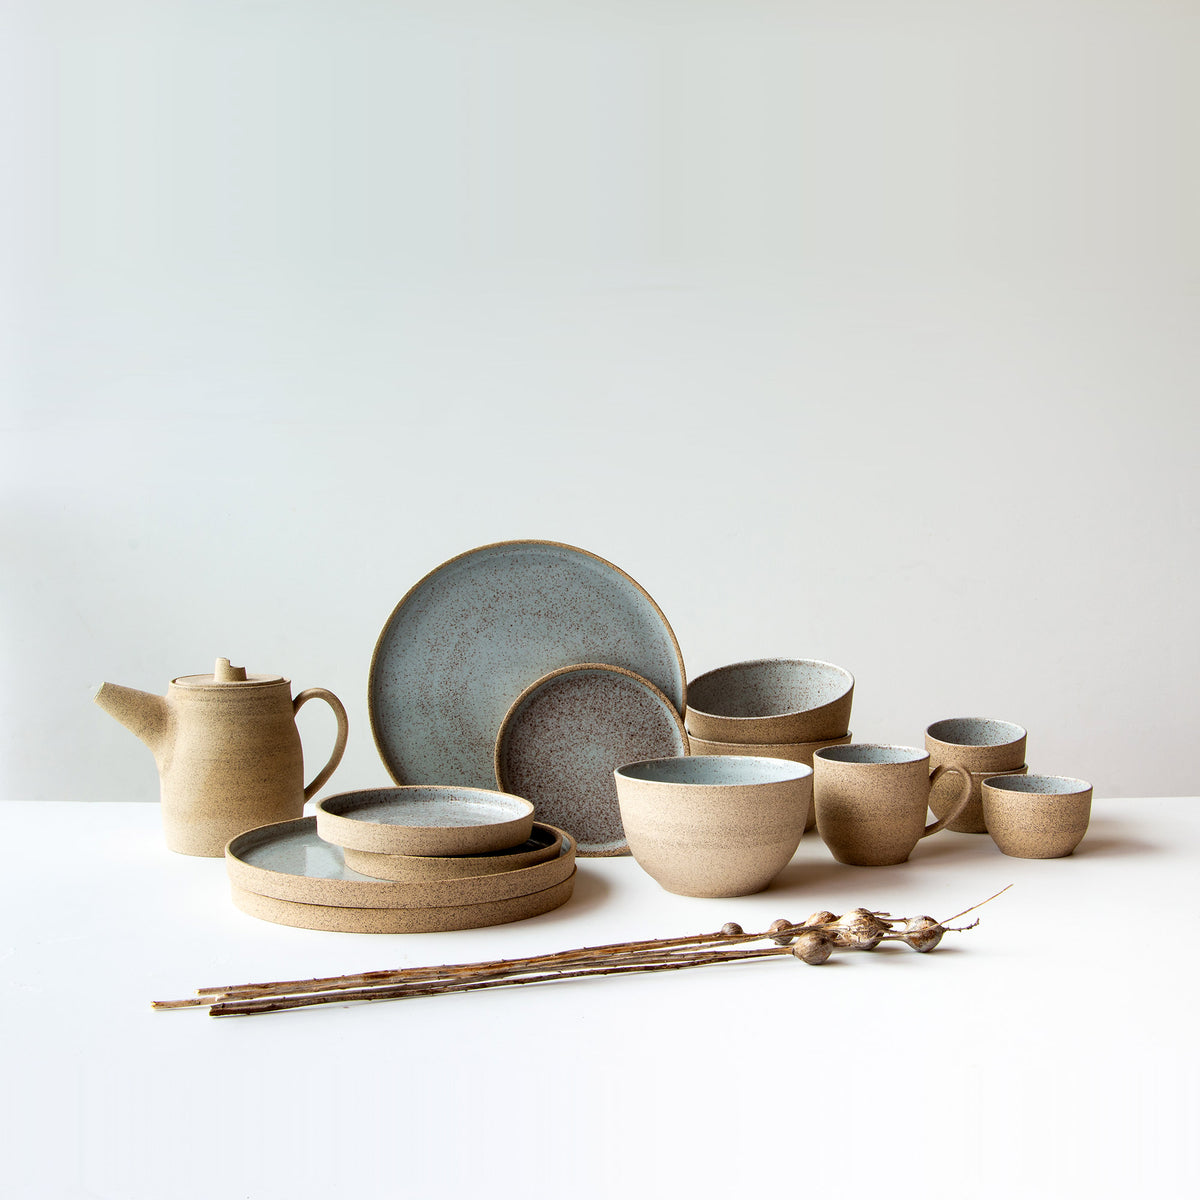 Valérie Pelletier's handmade ceramic work collection in speckled stoneware - Sold by Chic & Basta